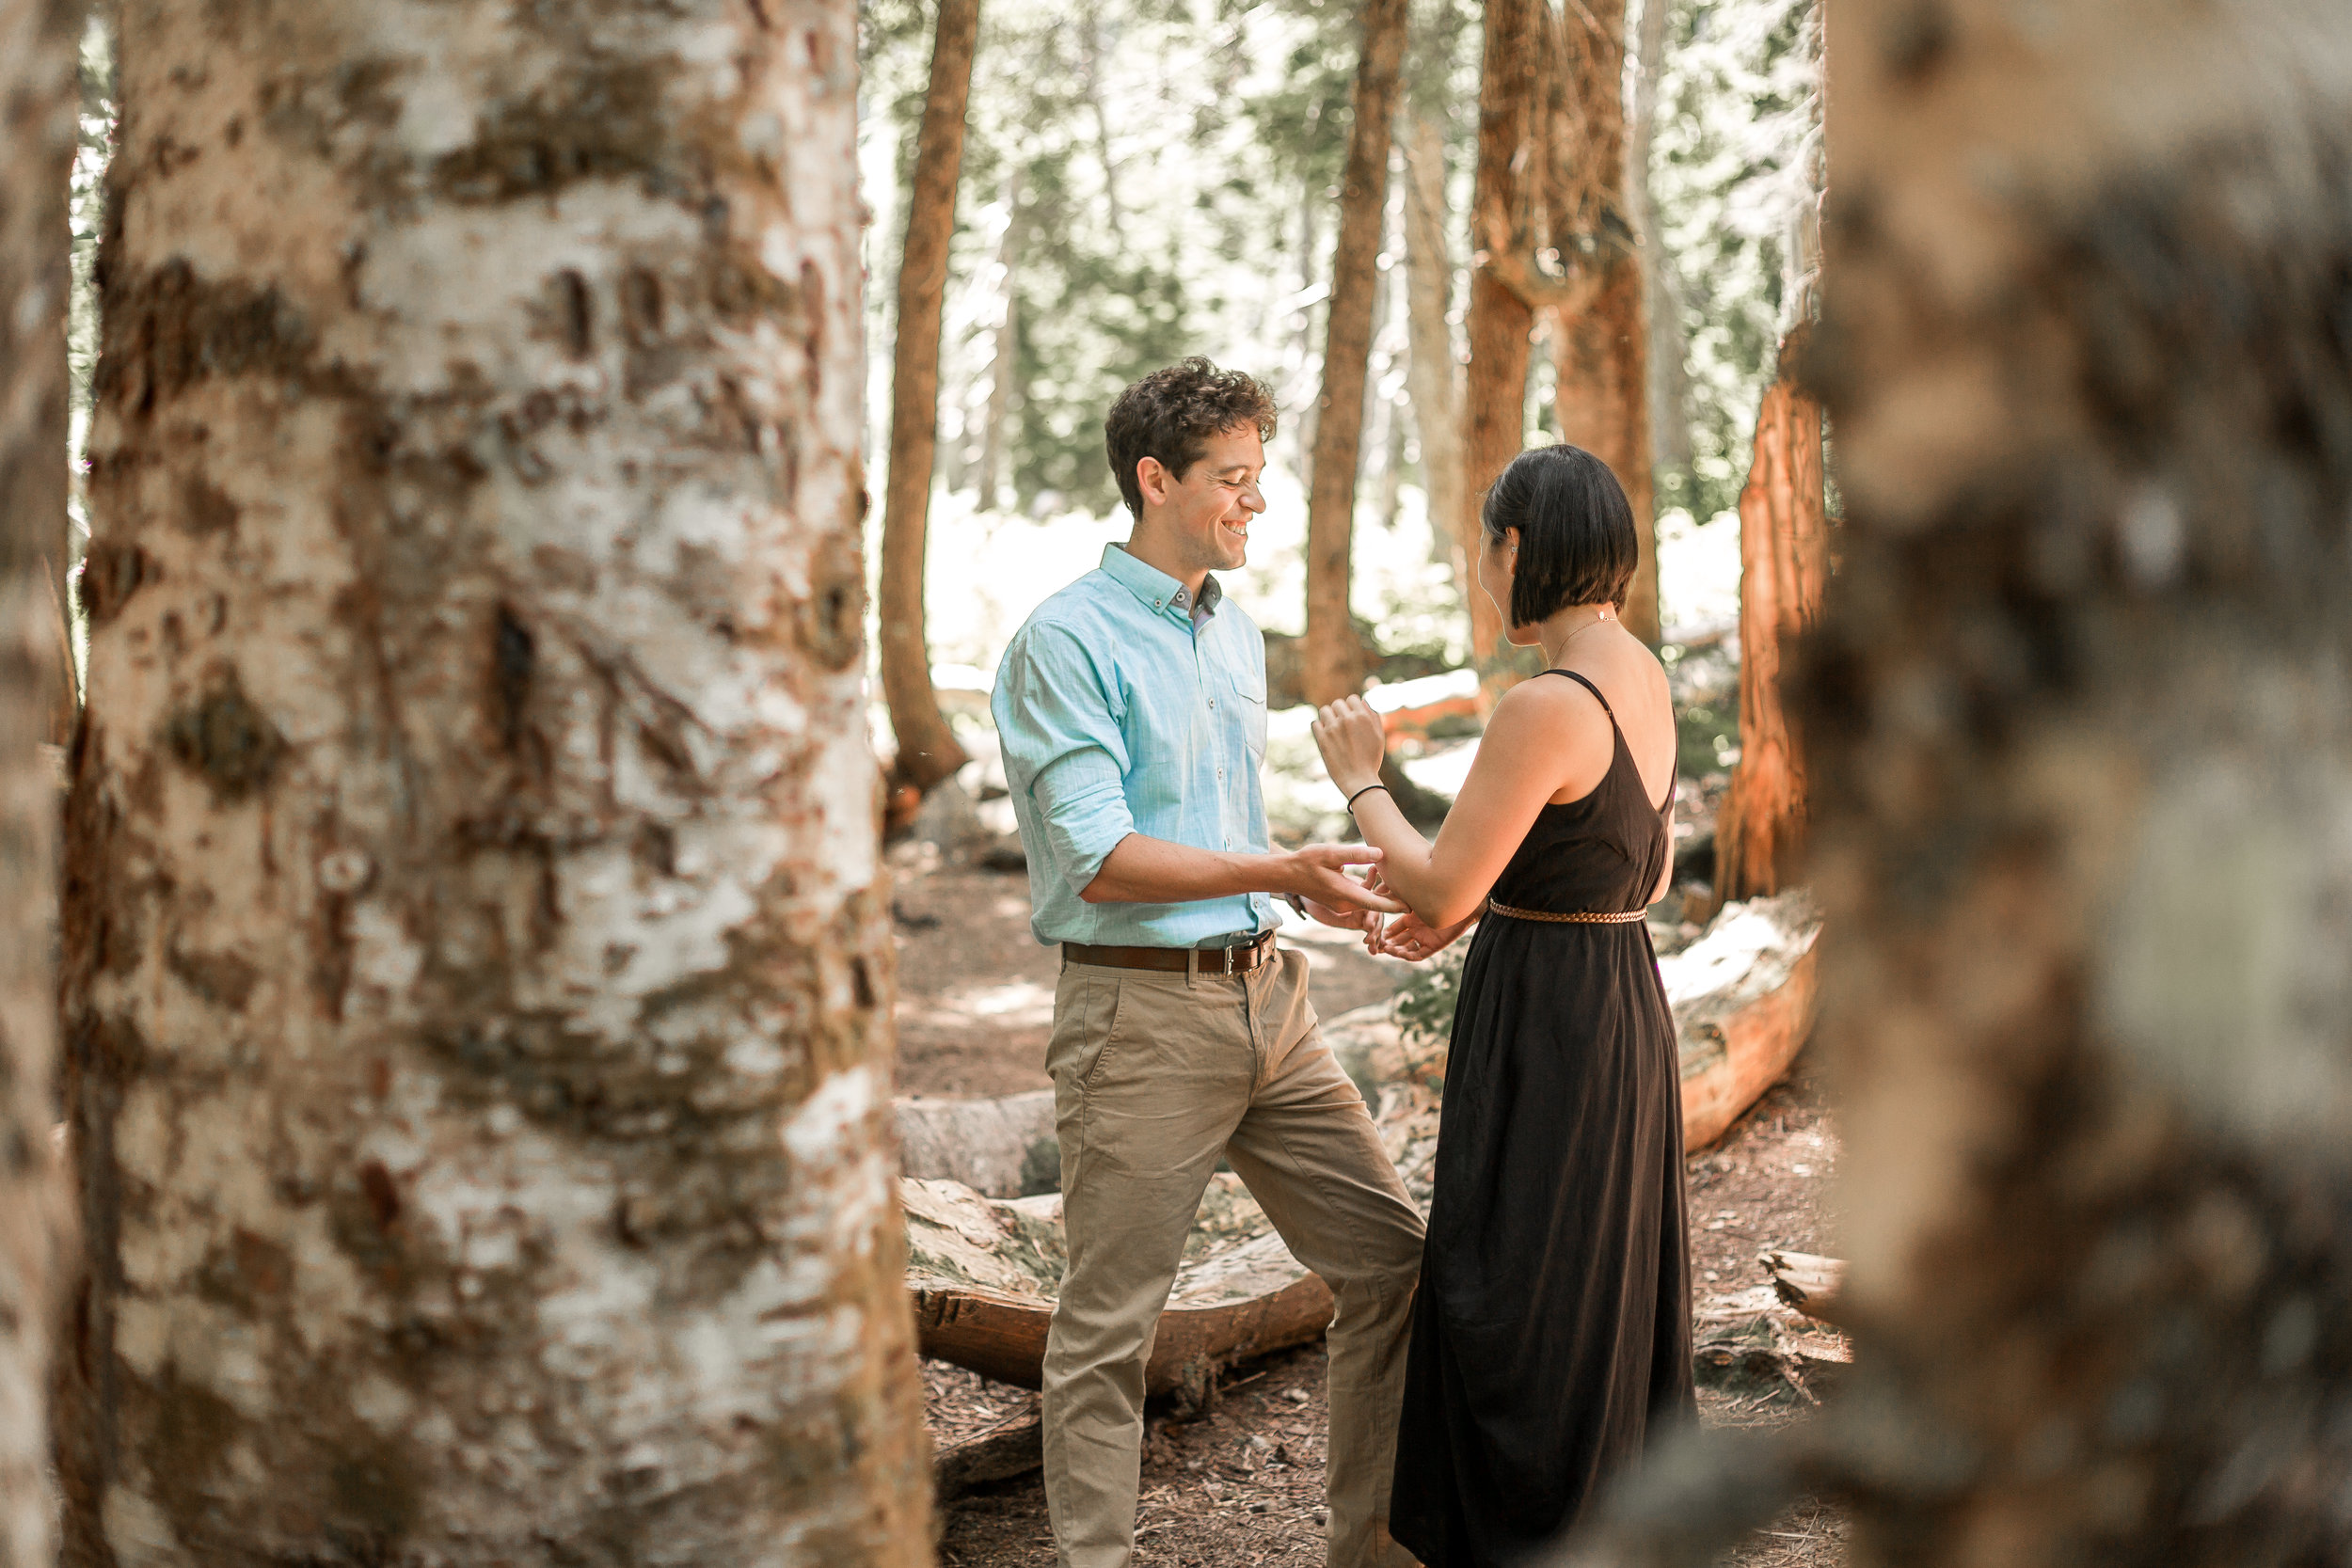 nicole-daacke-photography-hiking-engagement-session-in-snoqualmie-pass-washington-wedding-photographer-seattle-elopement-photography-adventurous-hiking-photos-heather-lake-washington-trails-18.jpg